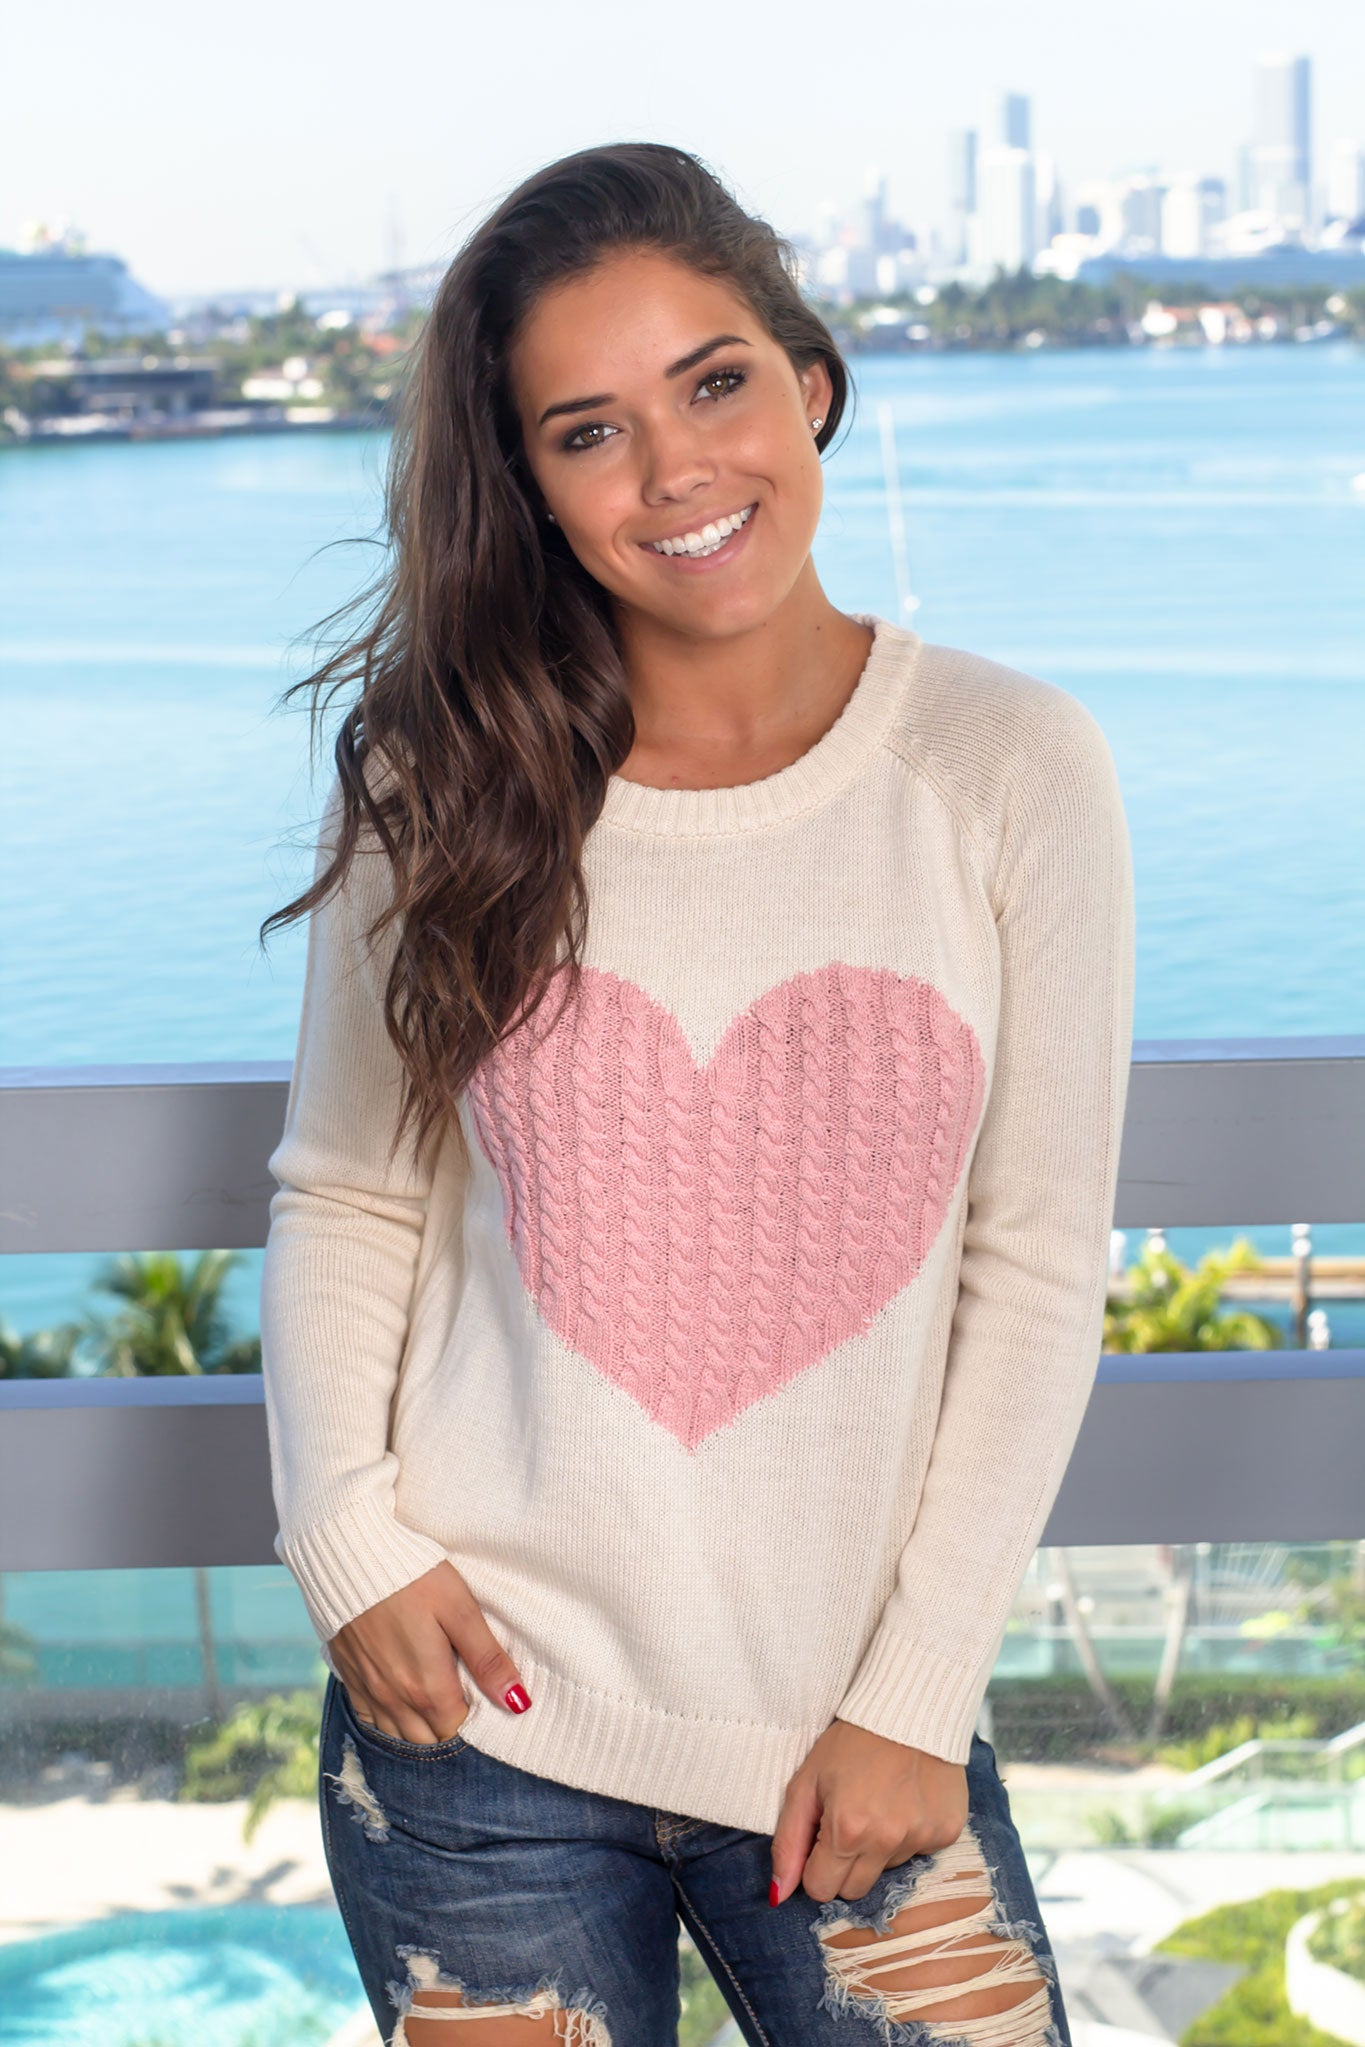 dd4412b9ead Oatmeal Knit Sweater with Heart Detail